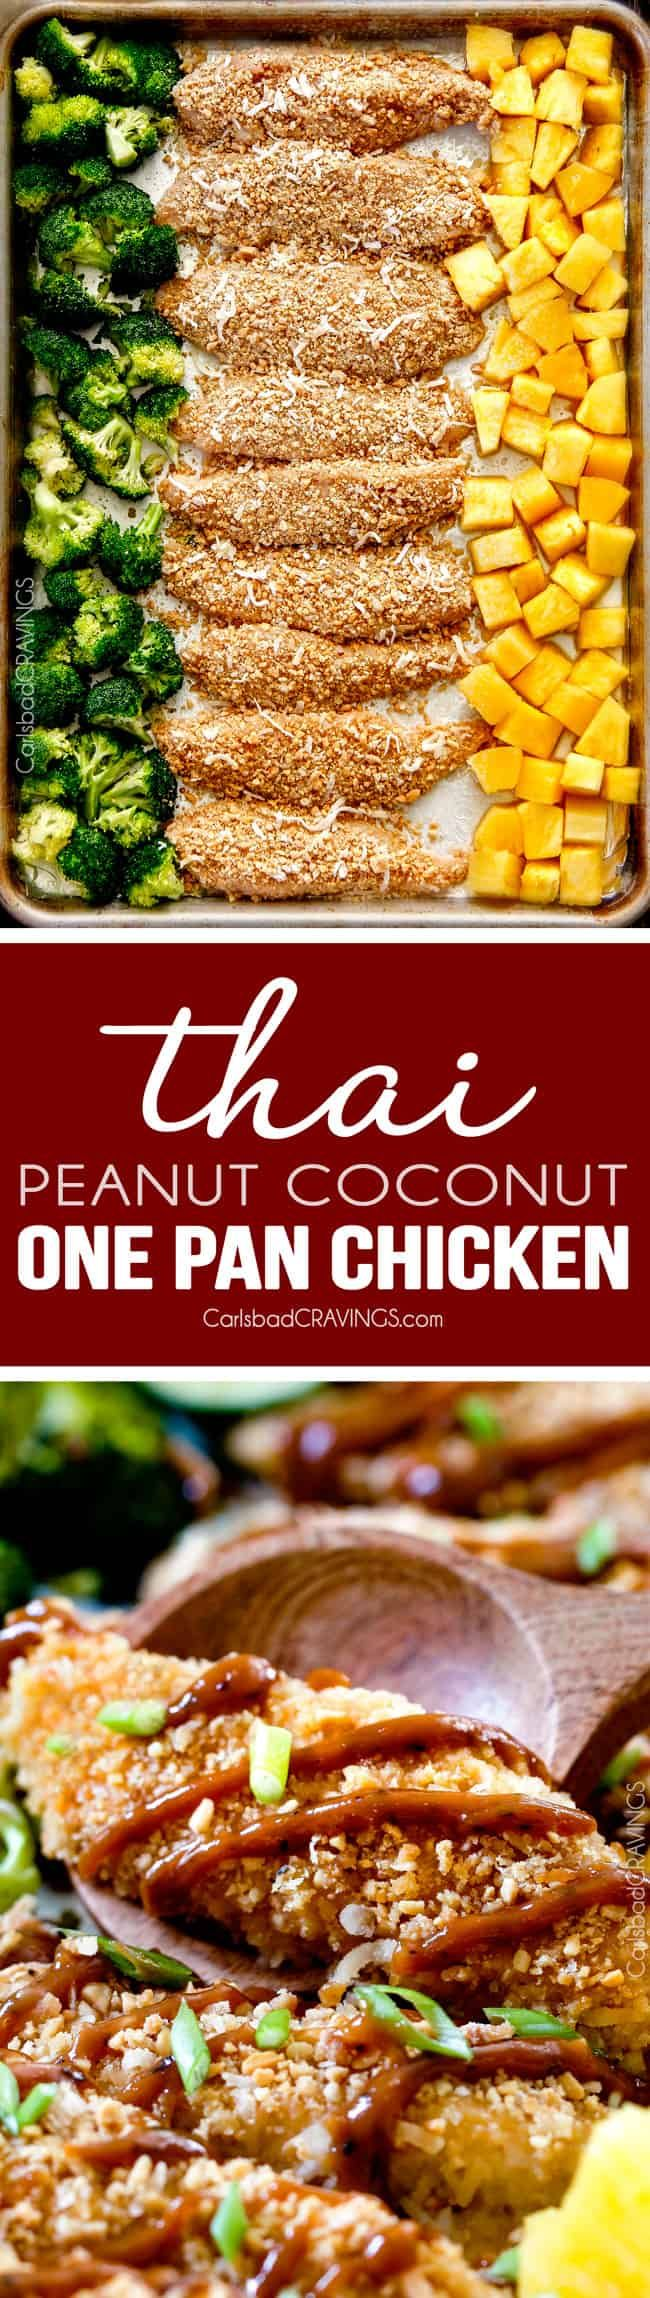 One Pan Thai Peanut Coconut Chicken with Pineapple - this is incredible! The chicken is breaded in peanuts, panko and coconut and the sauce of pineapple juice, coconut milk, brown sugar, peanut butter, etc. is the best peanut sauce I've ever have! and of course, the one pan is awesome! love the roasted pineapple! via @carlsbadcraving